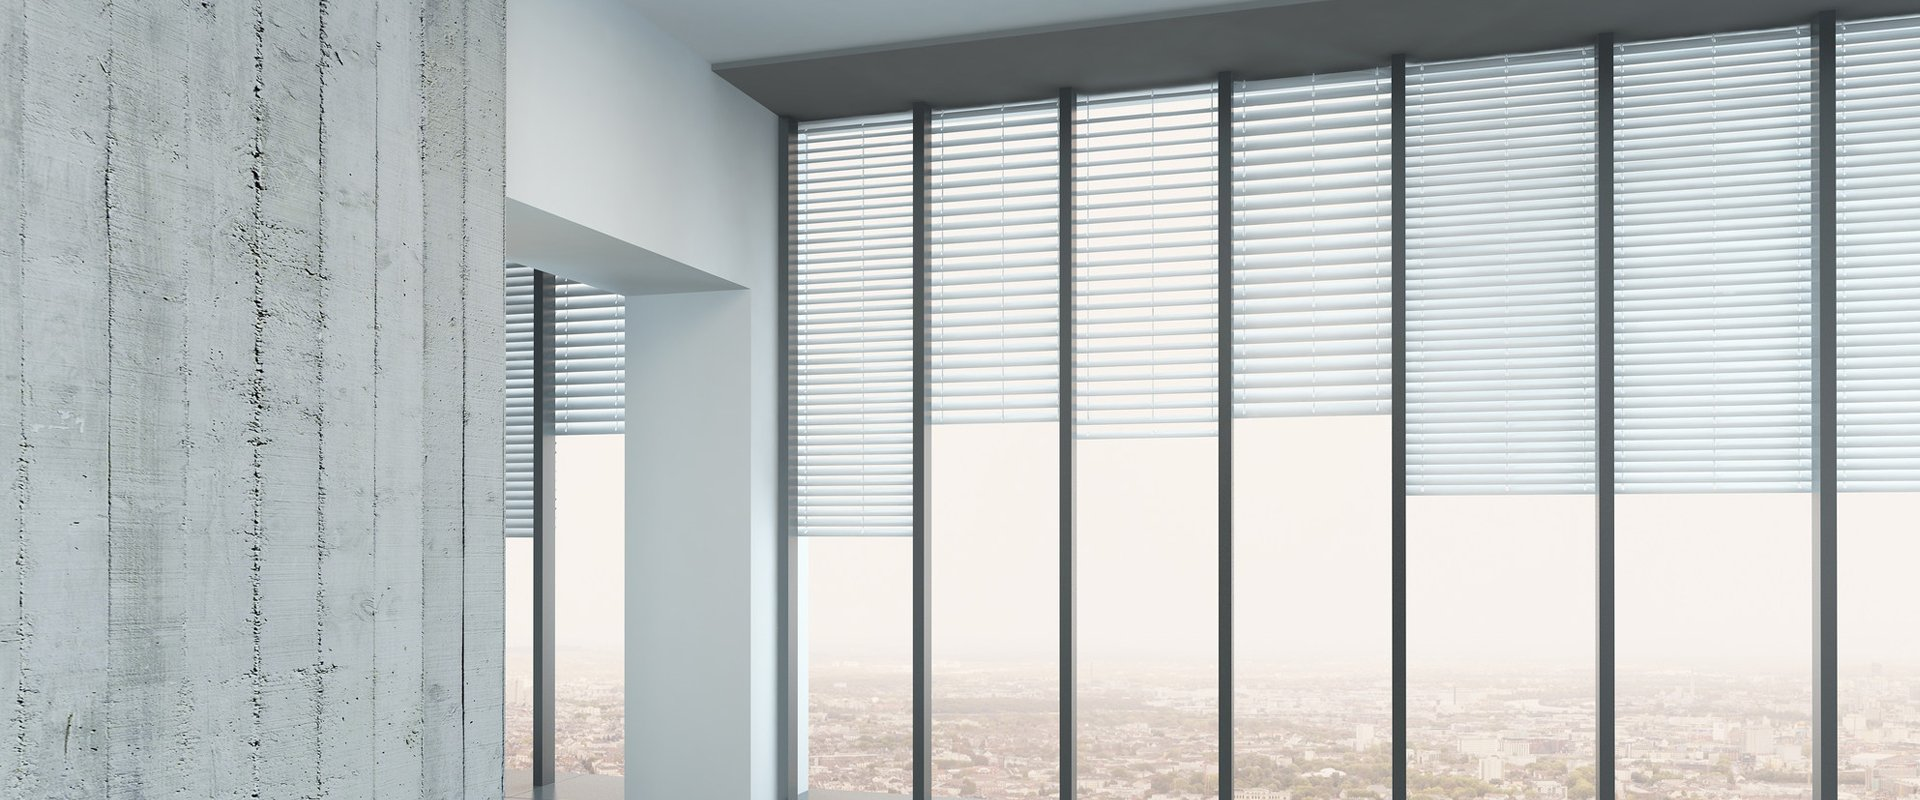 blinds for commercial spaces